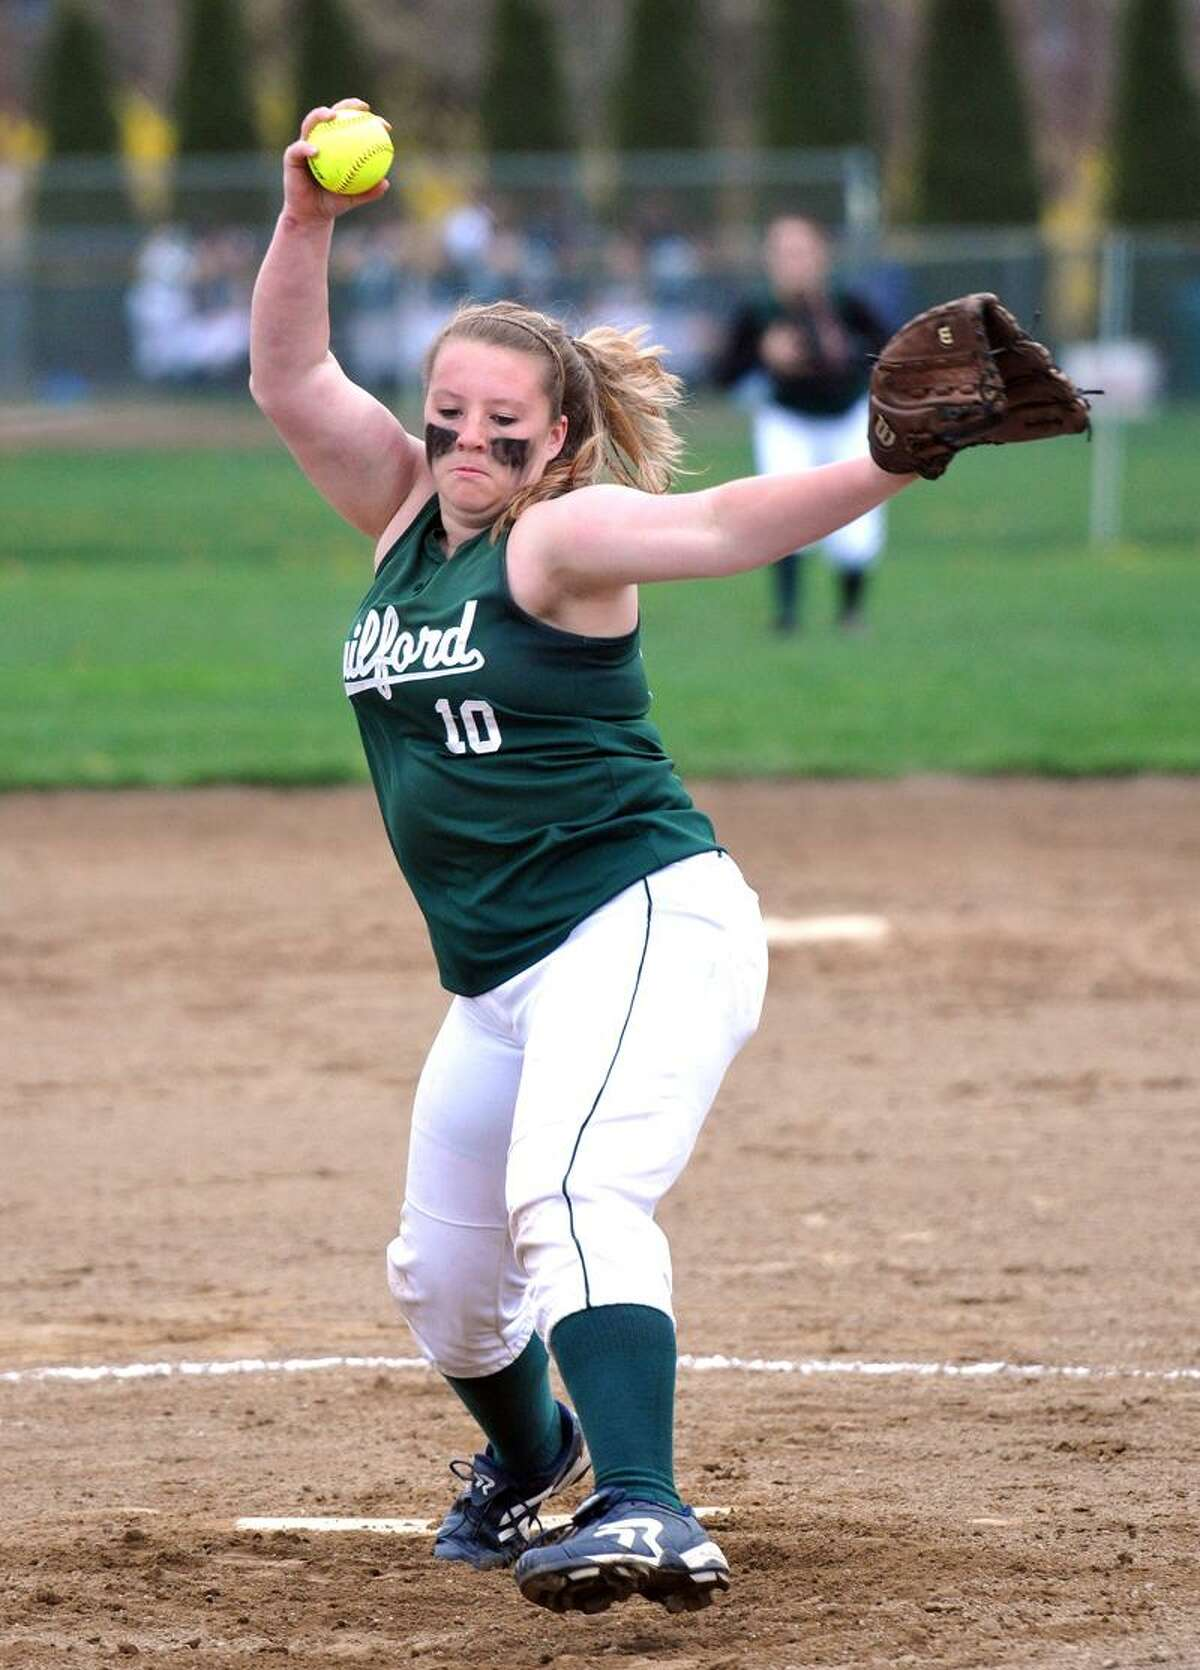 Guilford's Leah Torre winds up during the second inning against Hand. Photo by Peter Casolino/New Haven Register